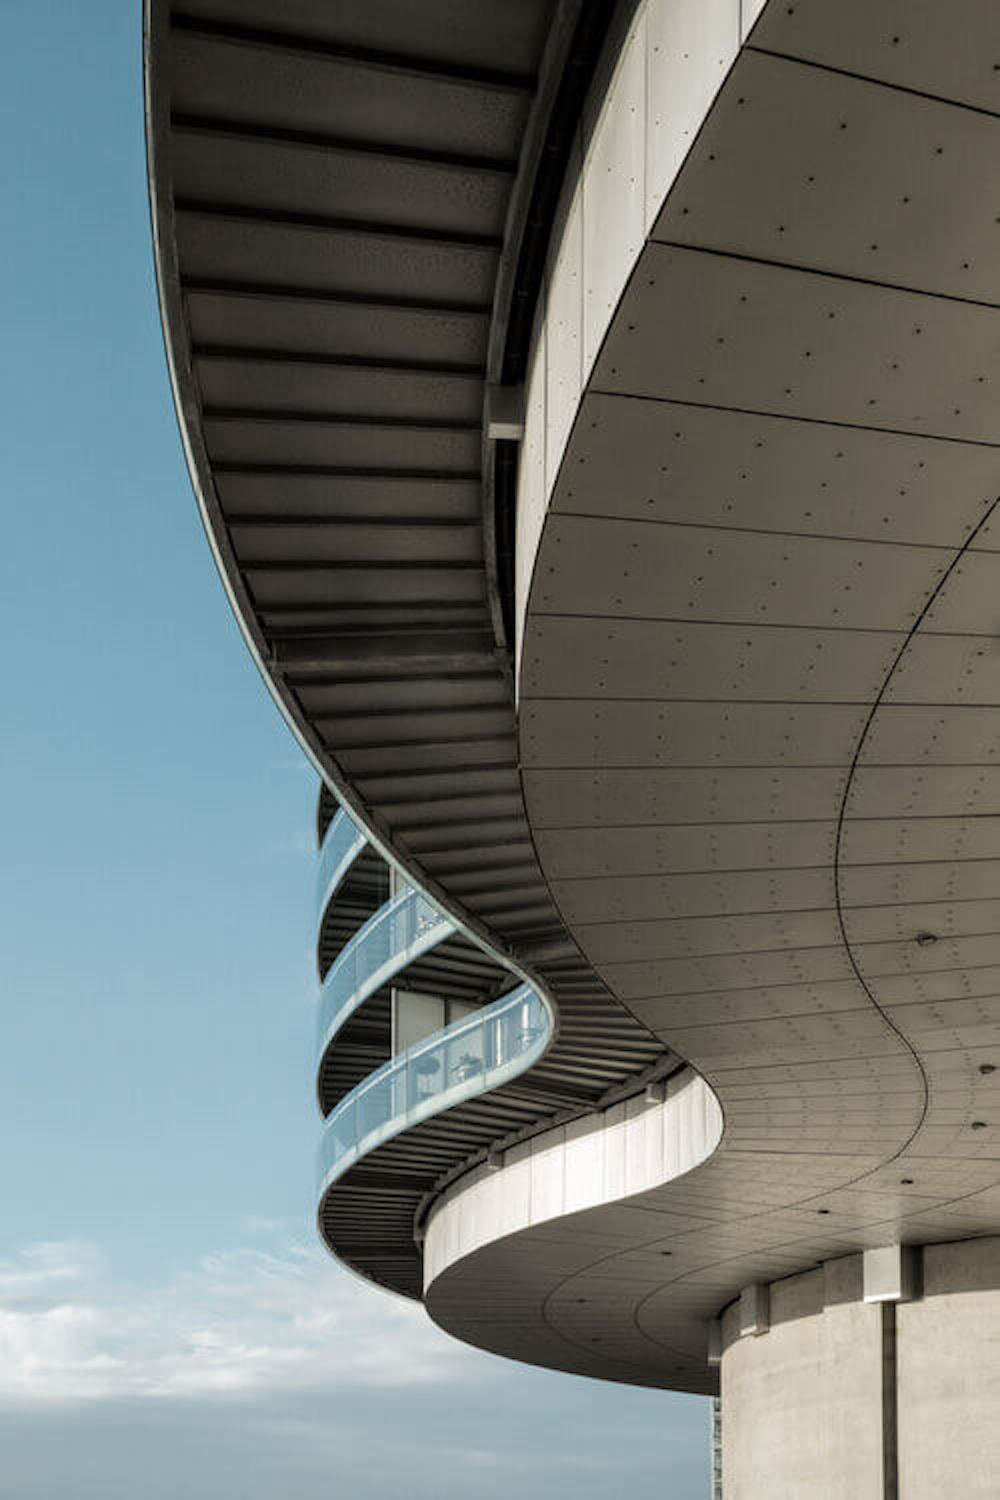 Rooftop of a curved building.